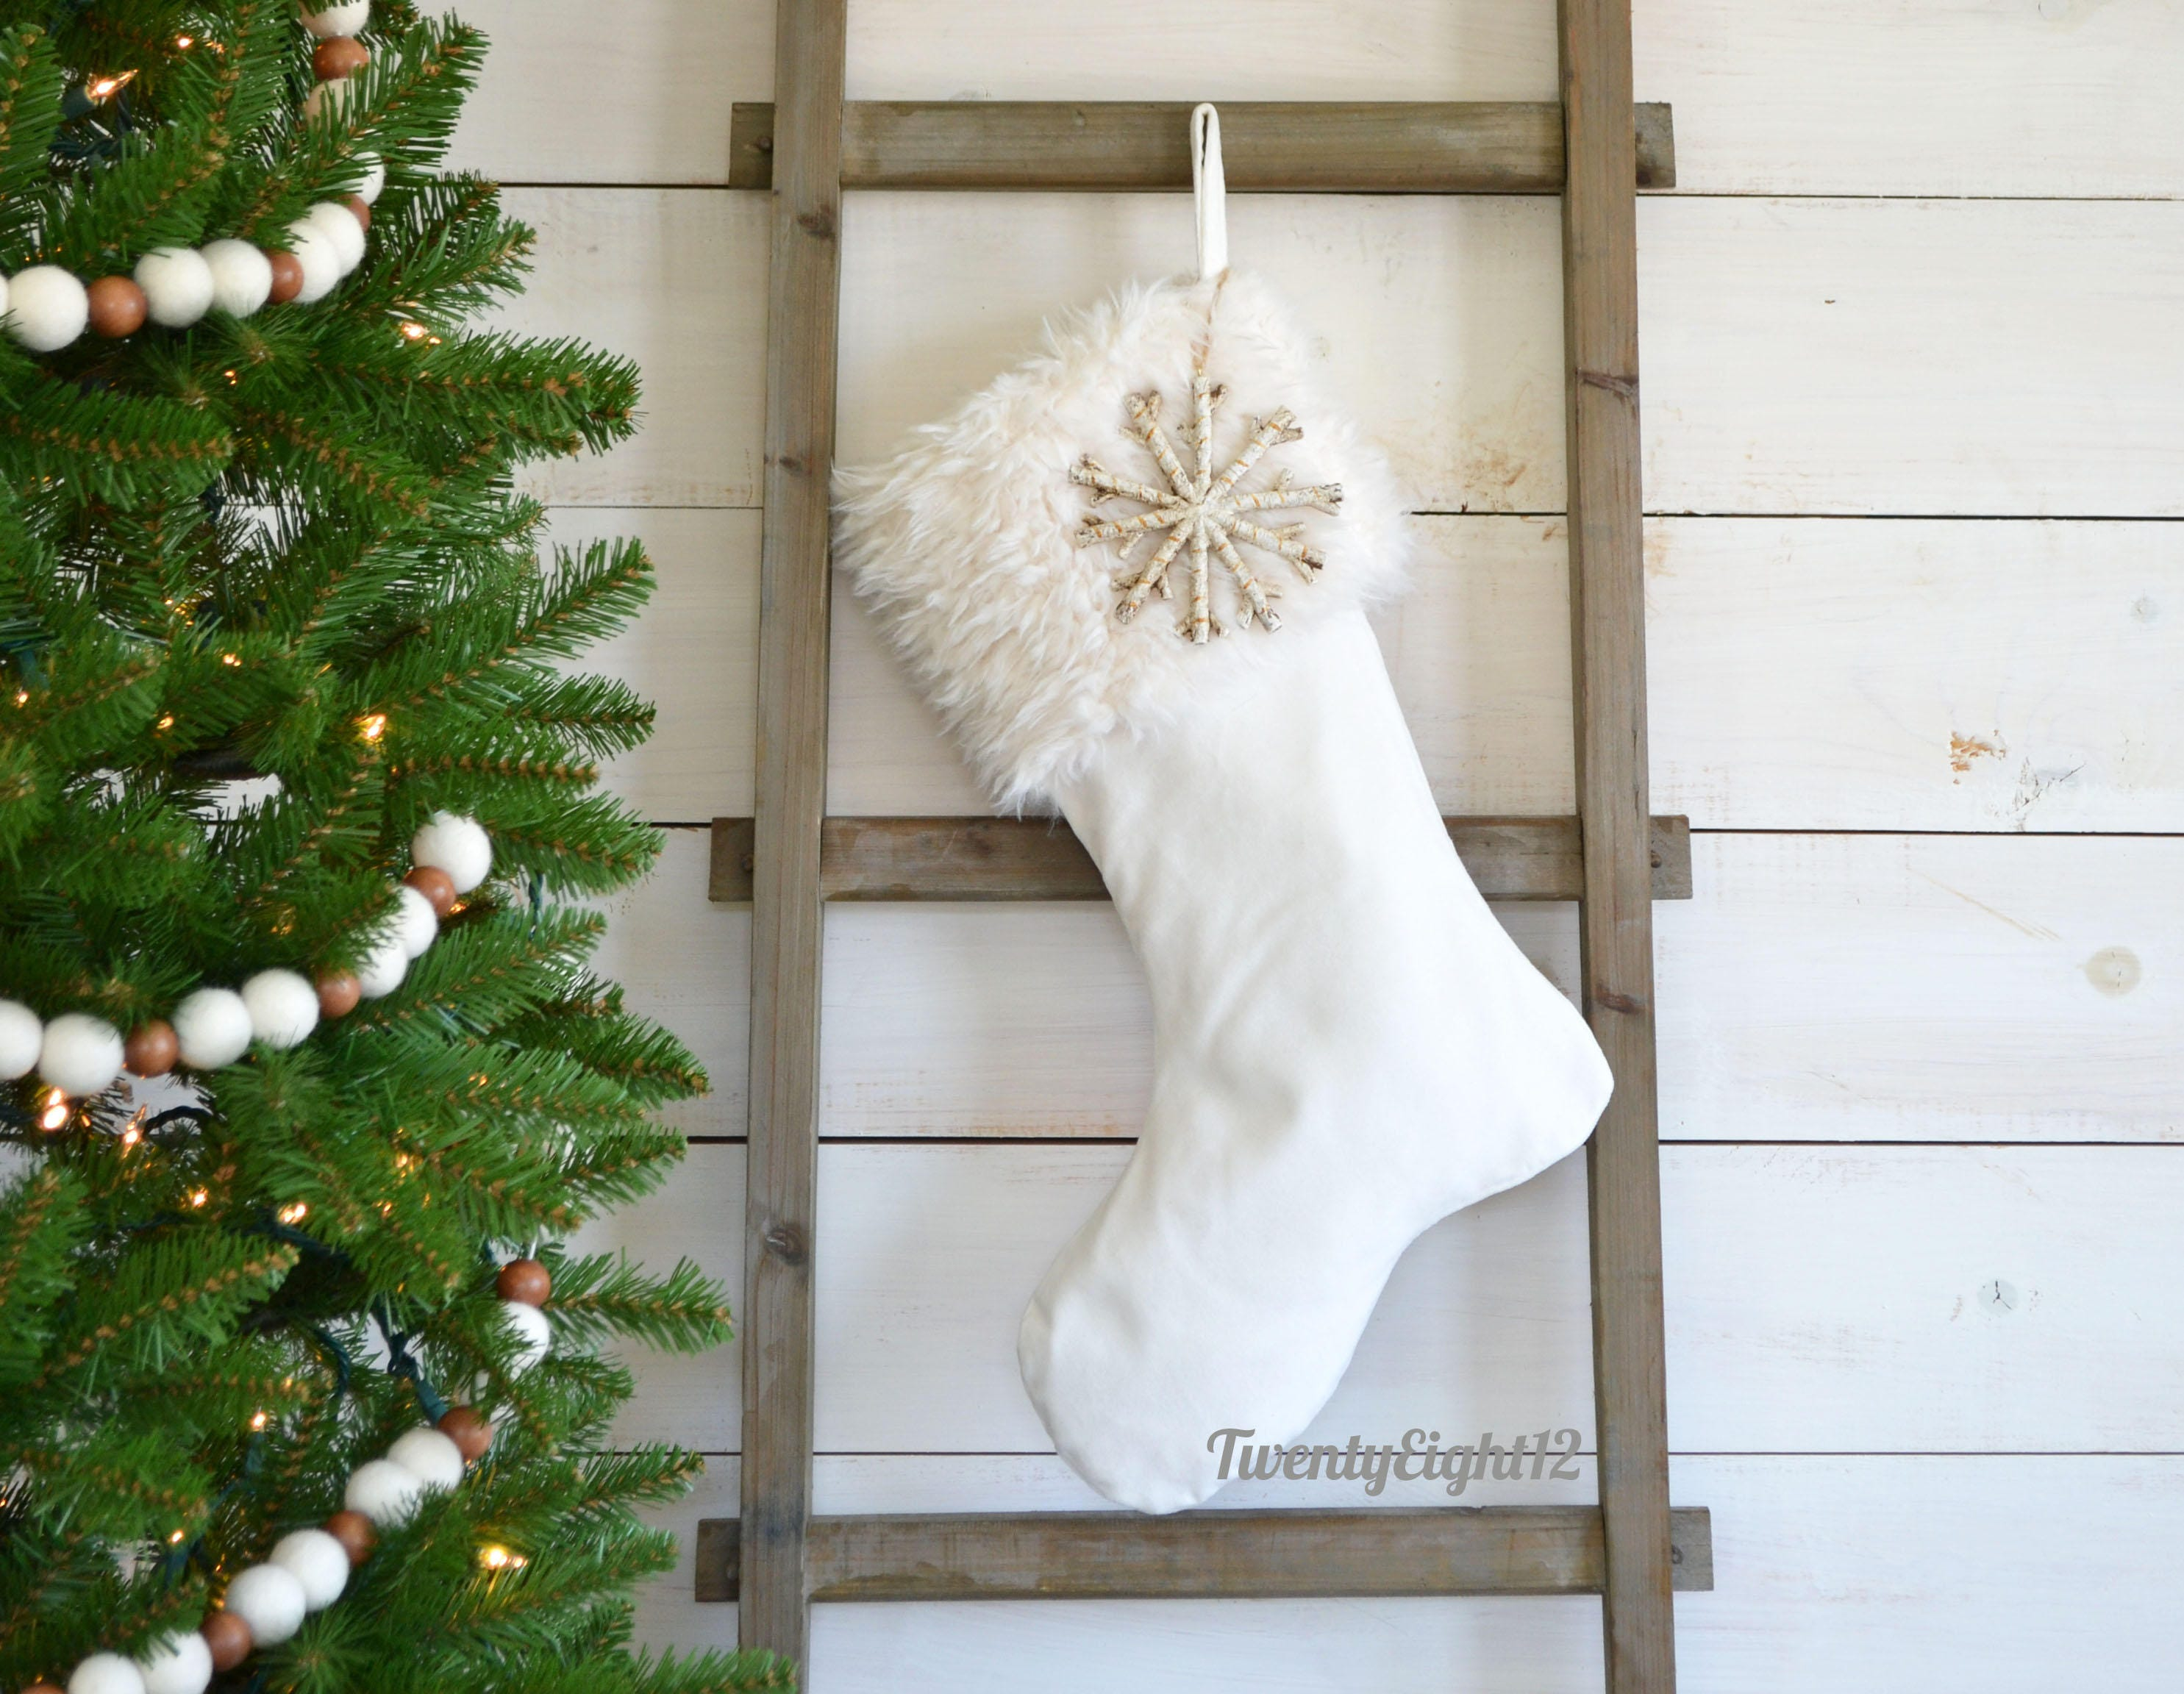 Buy Personalized Christmas Stocking - Embroidered Free: Stockings & Holders - auctionsales.tk FREE DELIVERY possible on eligible purchases.